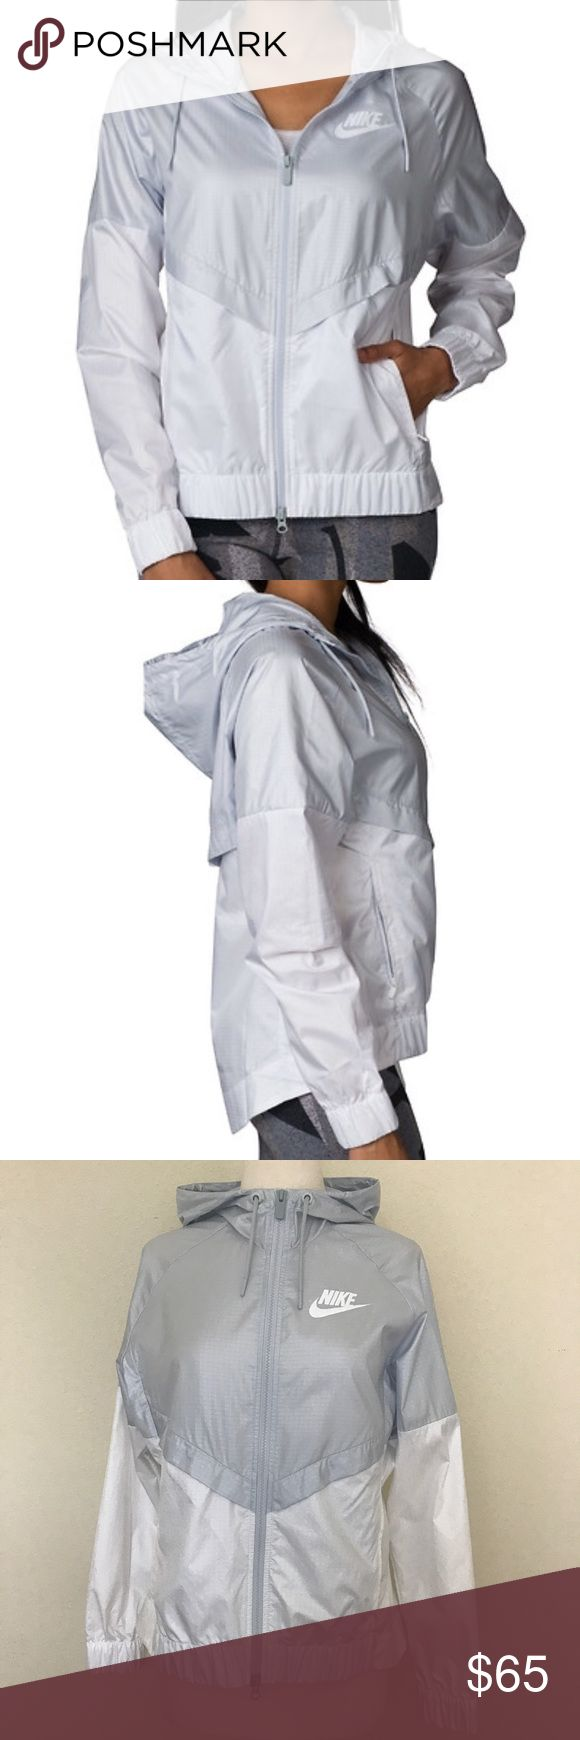 Nike Windrunner Jacket Talk about gorgeous! This Nike features a platinum and white color black, elastic front shirttail back, stringed hoodie, zip pockets, zip up the front, mess back under the rain flap and in perfect NWT's condition LXD8/9 gorgeous!!!! Nike Jackets & Coats